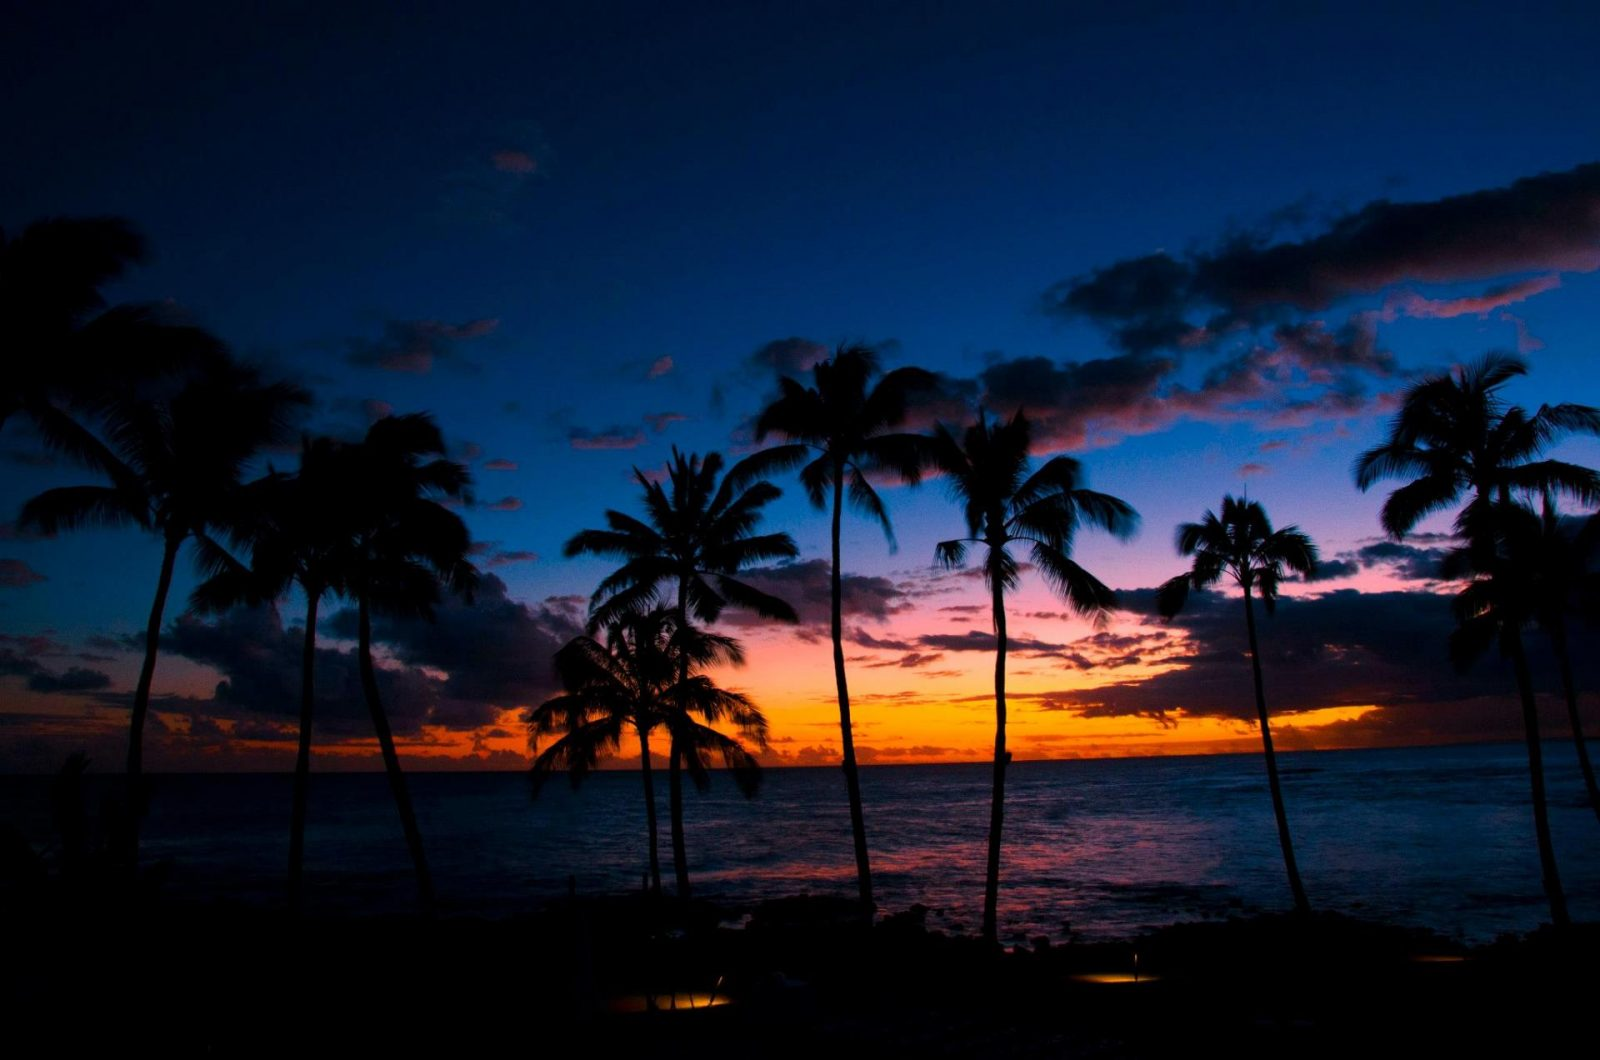 sunset in kauaii